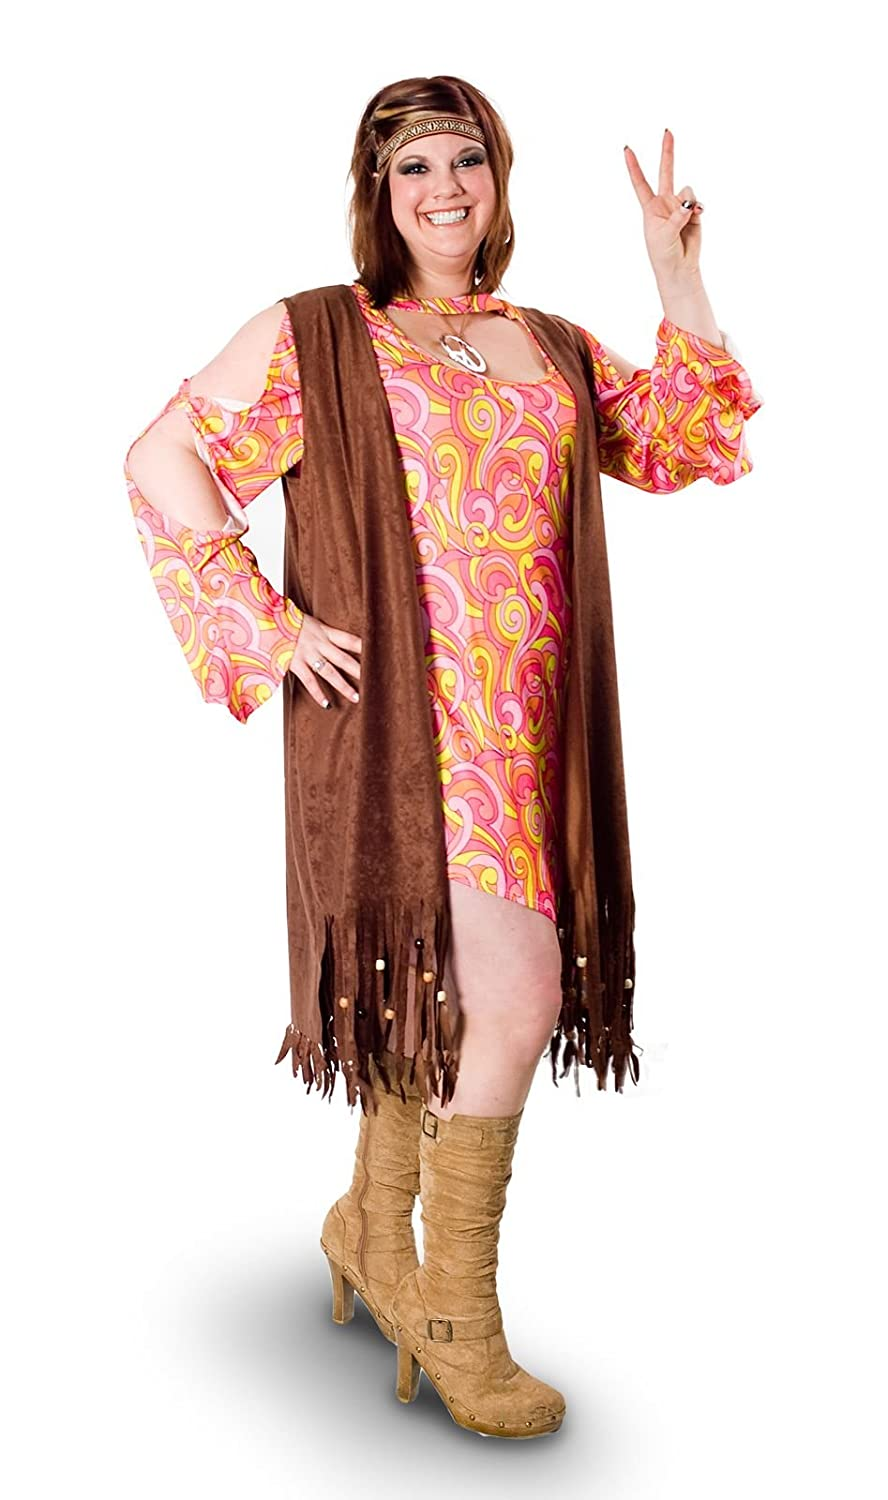 60s 70s Plus Size Dresses, Clothing, Costumes